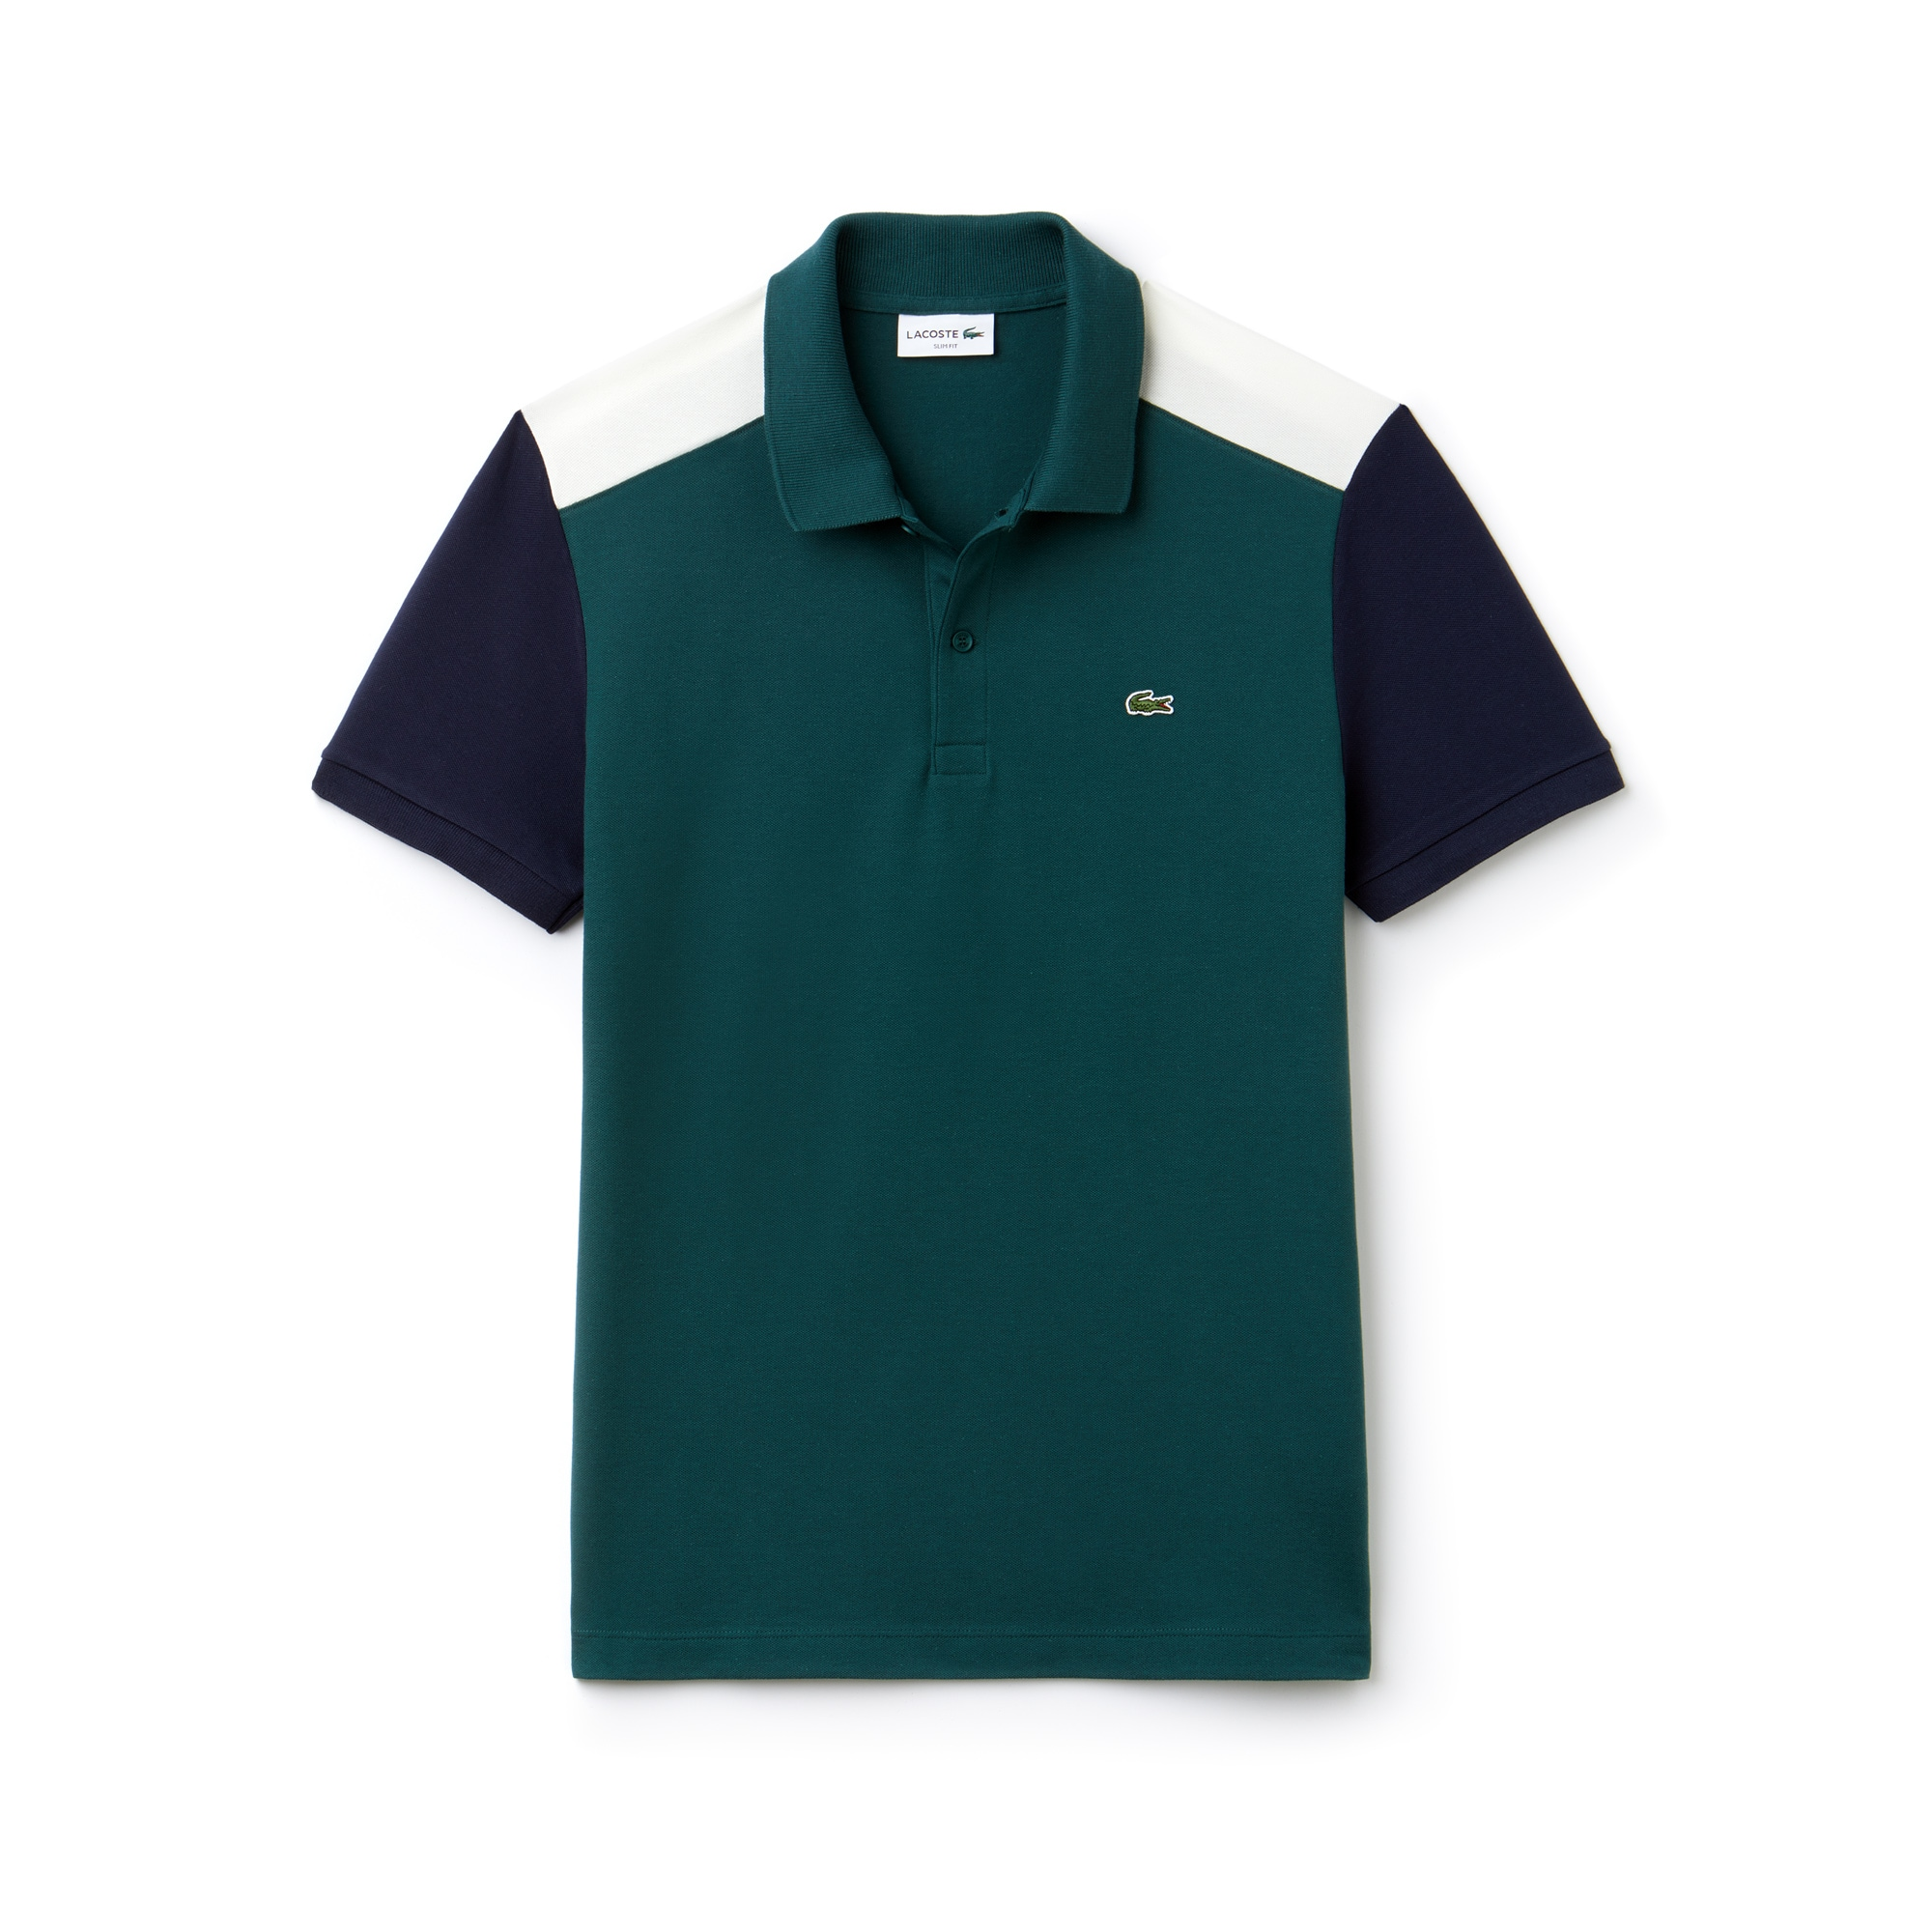 Men's Lacoste Slim Fit Colorblock Stretch Pima Cotton Piqué Polo Shirt